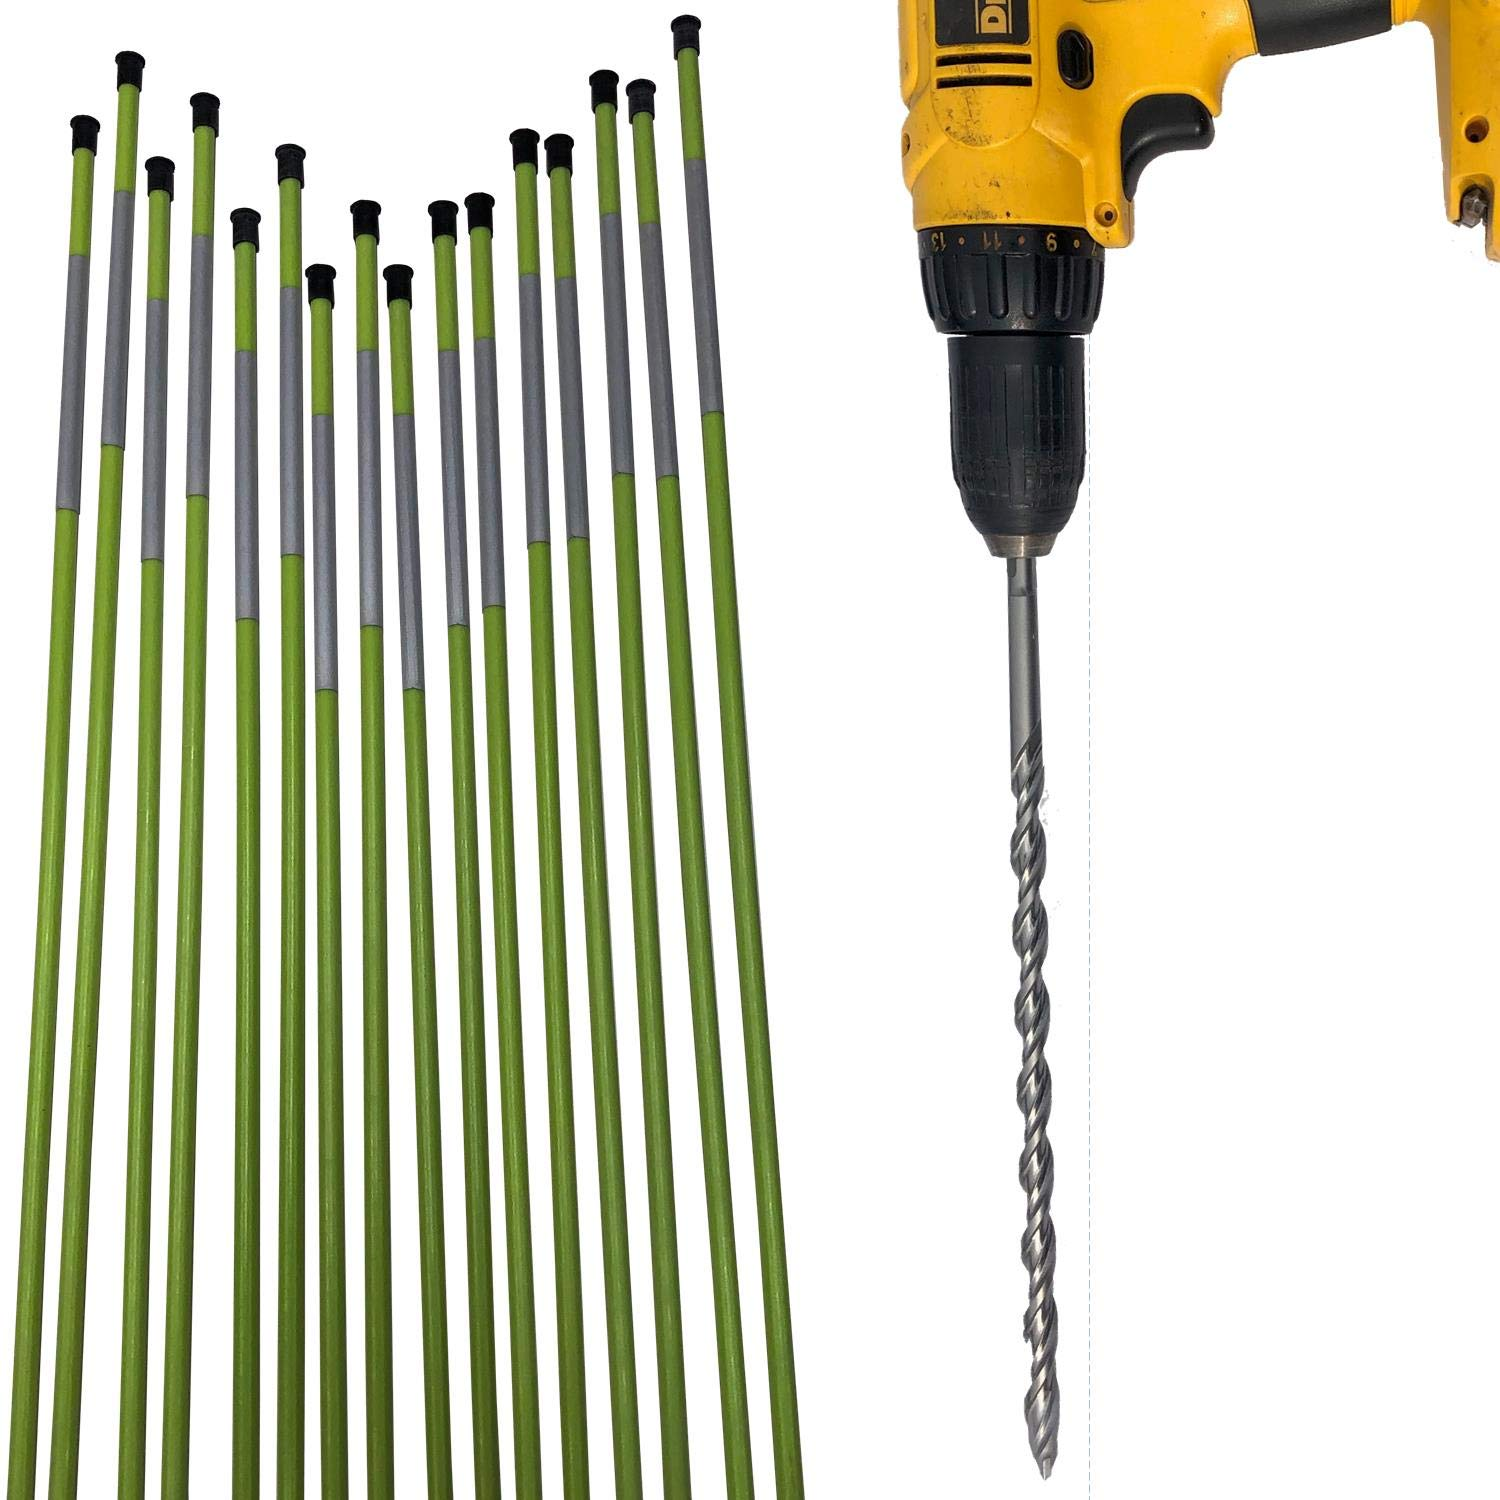 KEYFIT Tools MarkerBit & Driveway Reflectors (16 Pack) of Driveway Markers, Snow Plow Stakes, MarkerBit for Easy Installation Up to 5/16'' Diameter Stakes